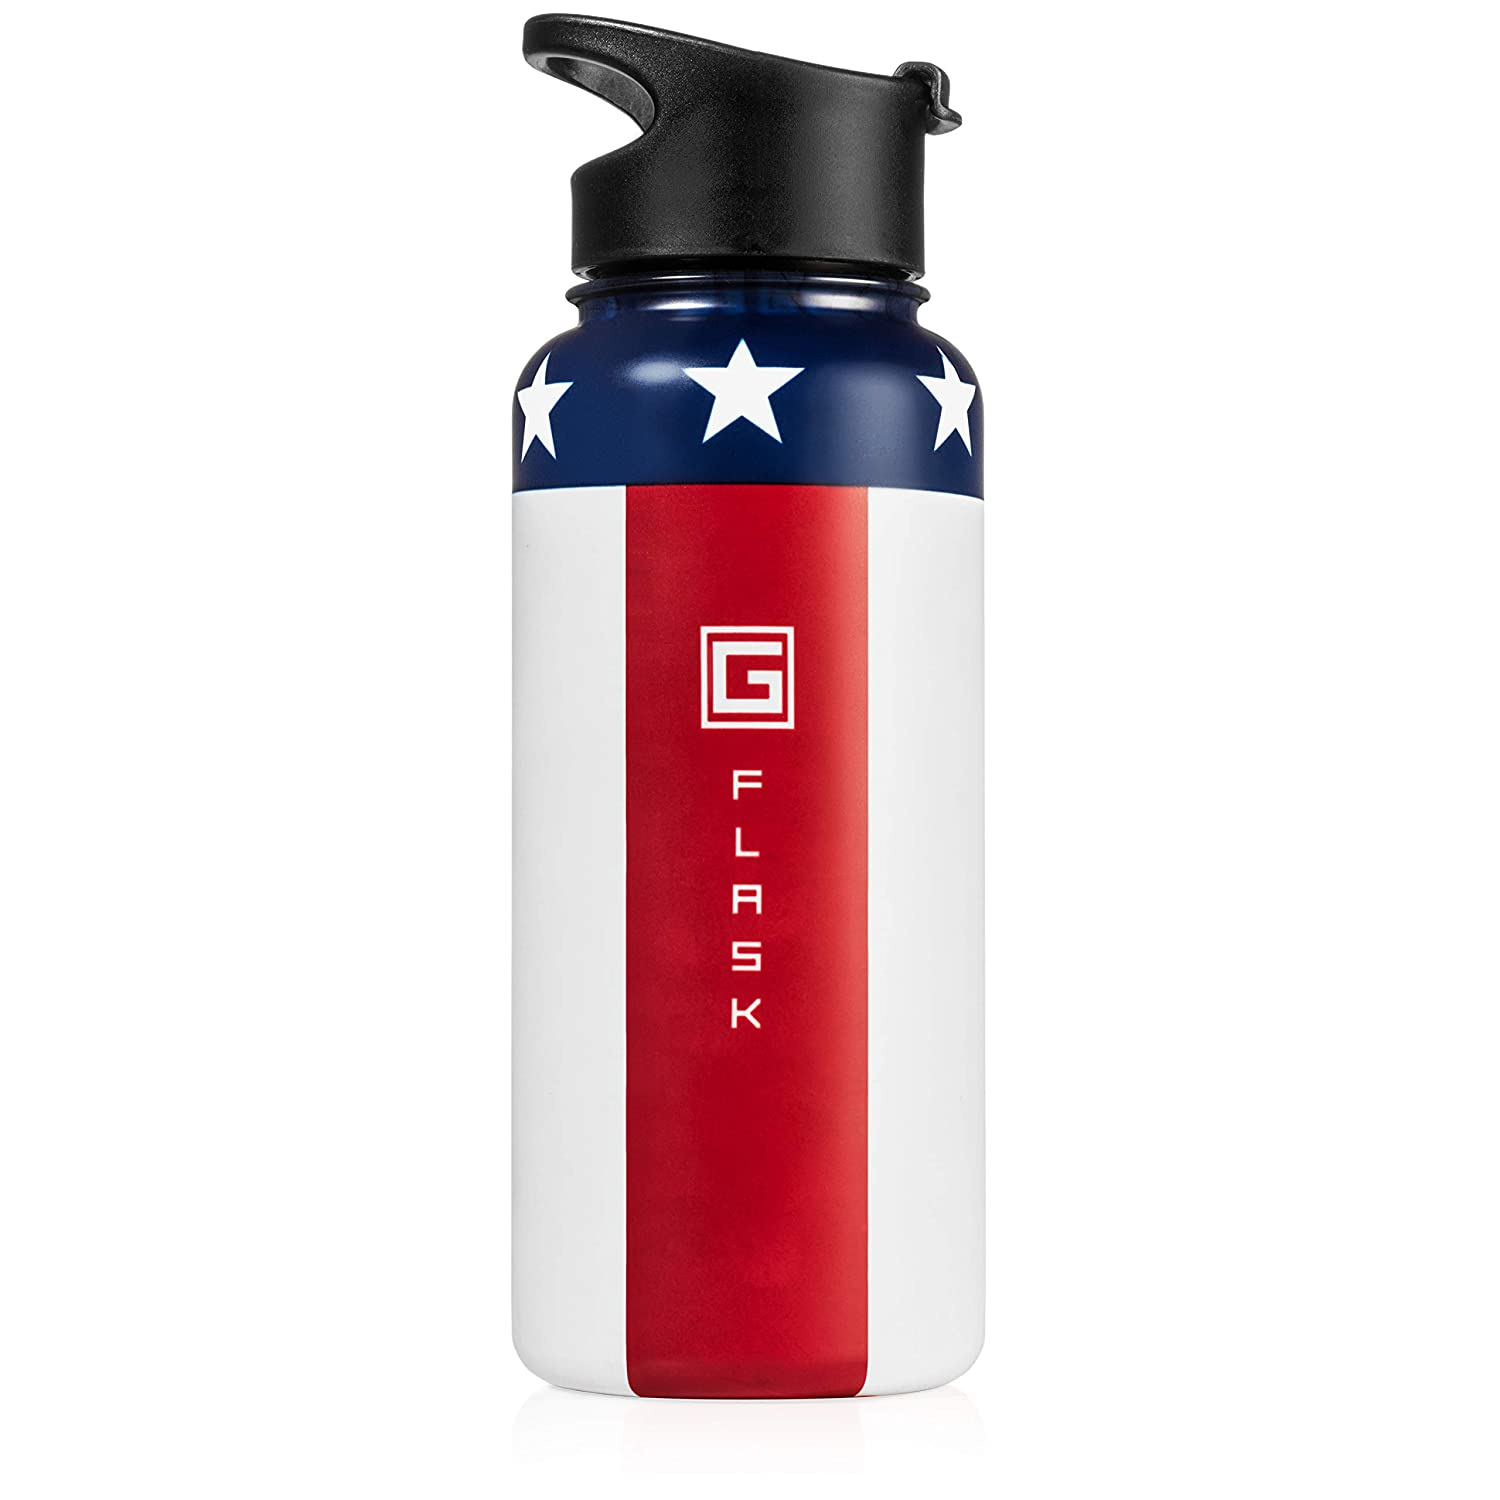 32oz Great for Hot or Cold Drinks Made from Stainless Steel and BPA-Free Flip Top Lid G-Flask Vacuum Insulated American Flag Water Bottle